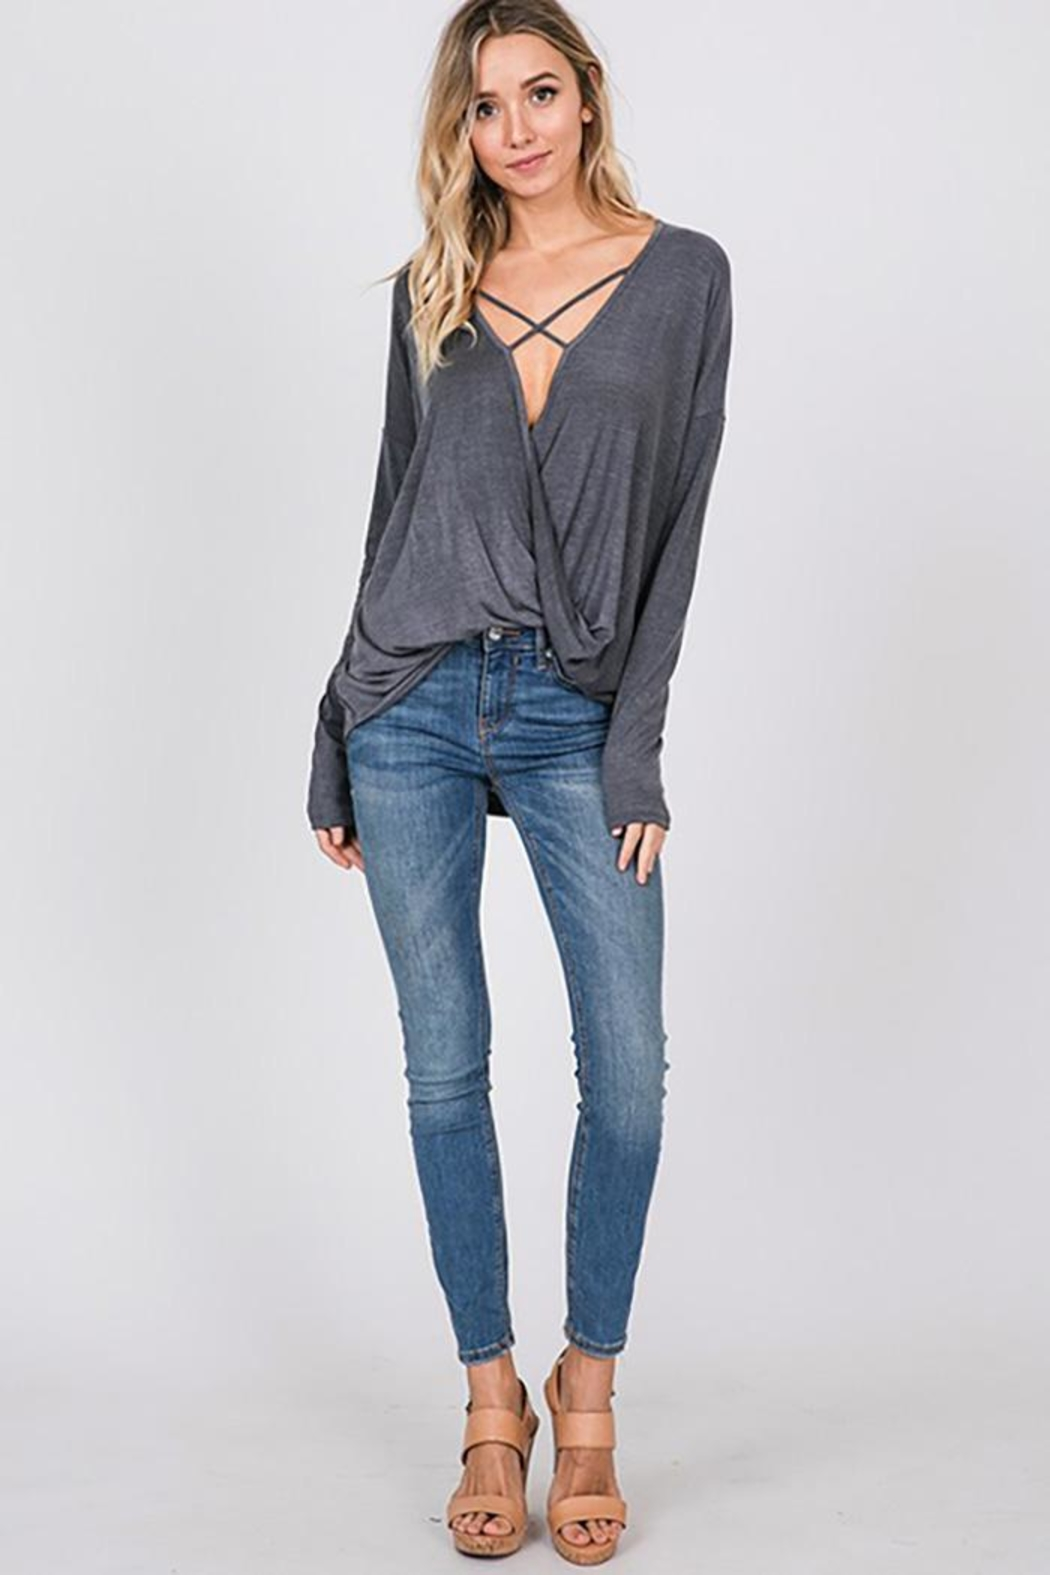 CY Fashion Washed Front Cross Detail Top - Front Cropped Image